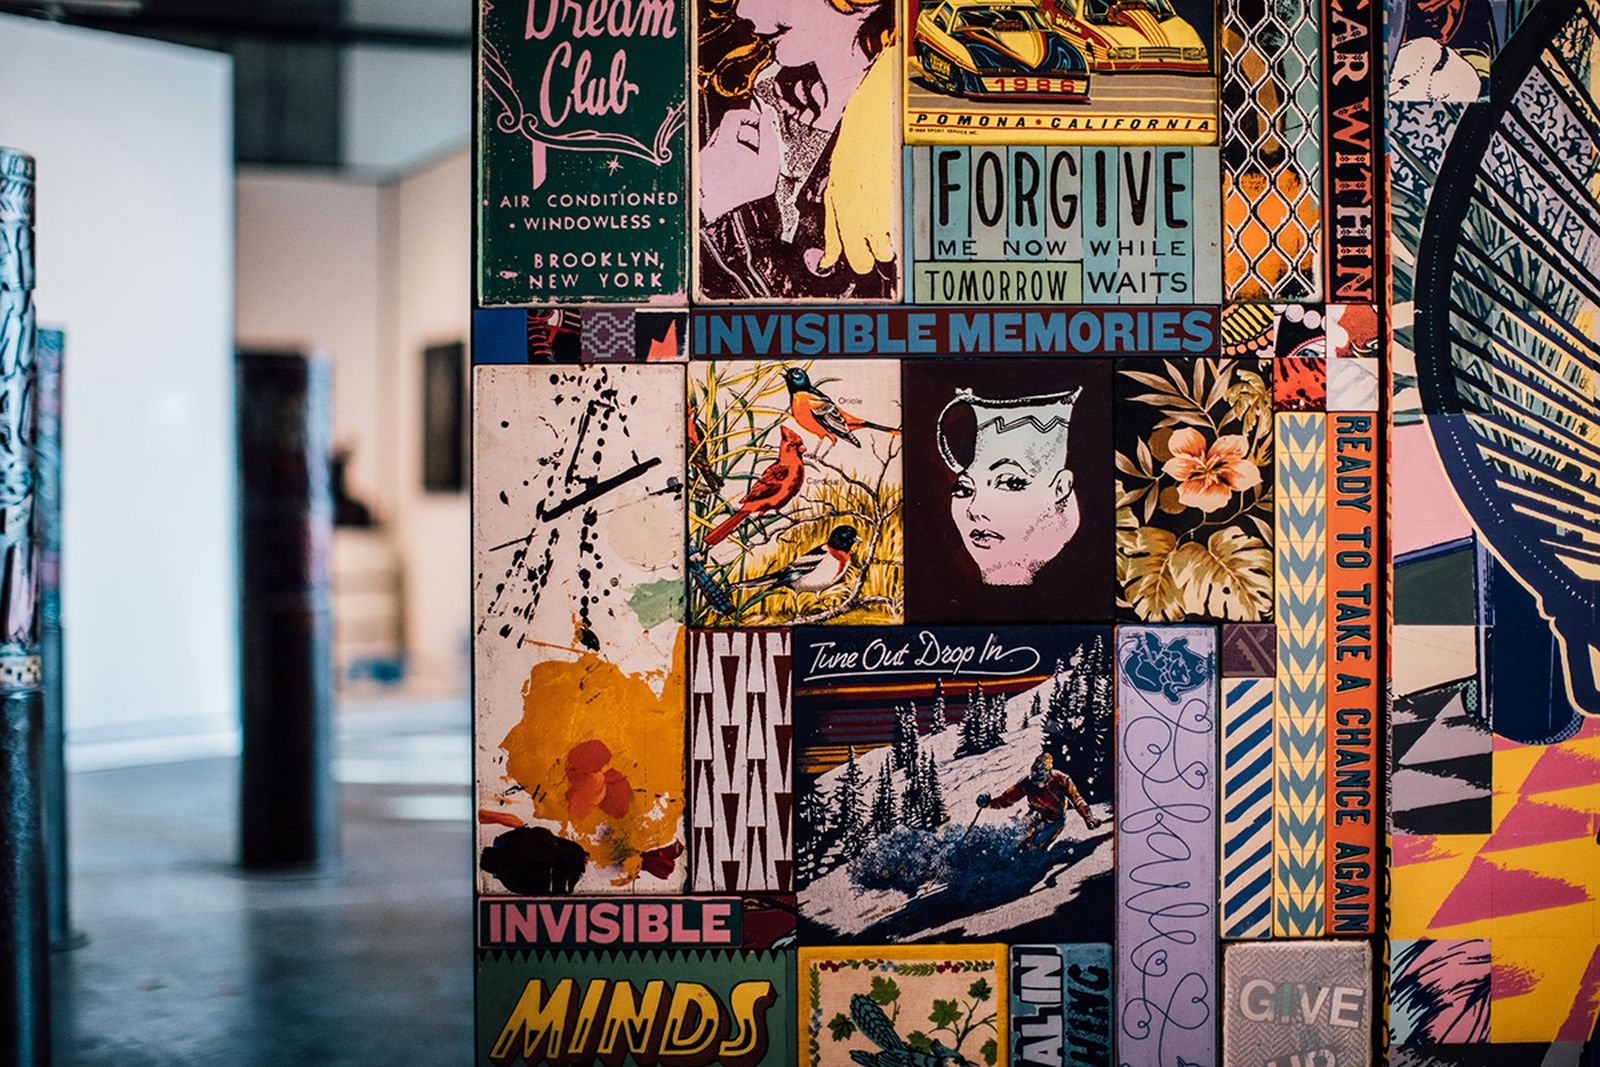 beyond the streets faile